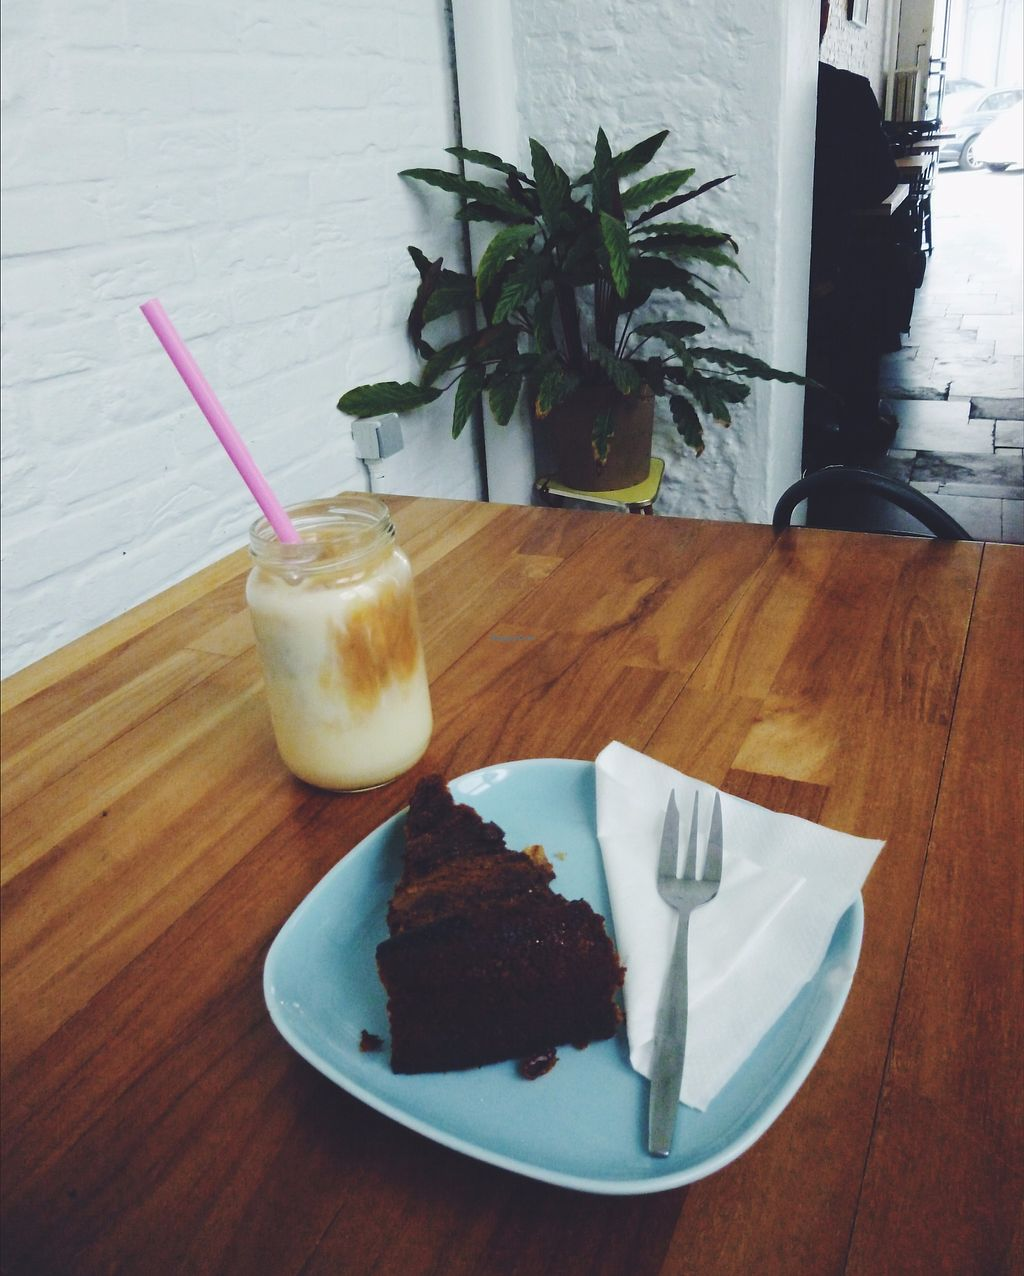 "Photo of Vero Caffe  by <a href=""/members/profile/unmond"">unmond</a> <br/>Peanut Butter Banana Cake w/ Iced Soy Latte <br/> July 30, 2017  - <a href='/contact/abuse/image/97393/286556'>Report</a>"